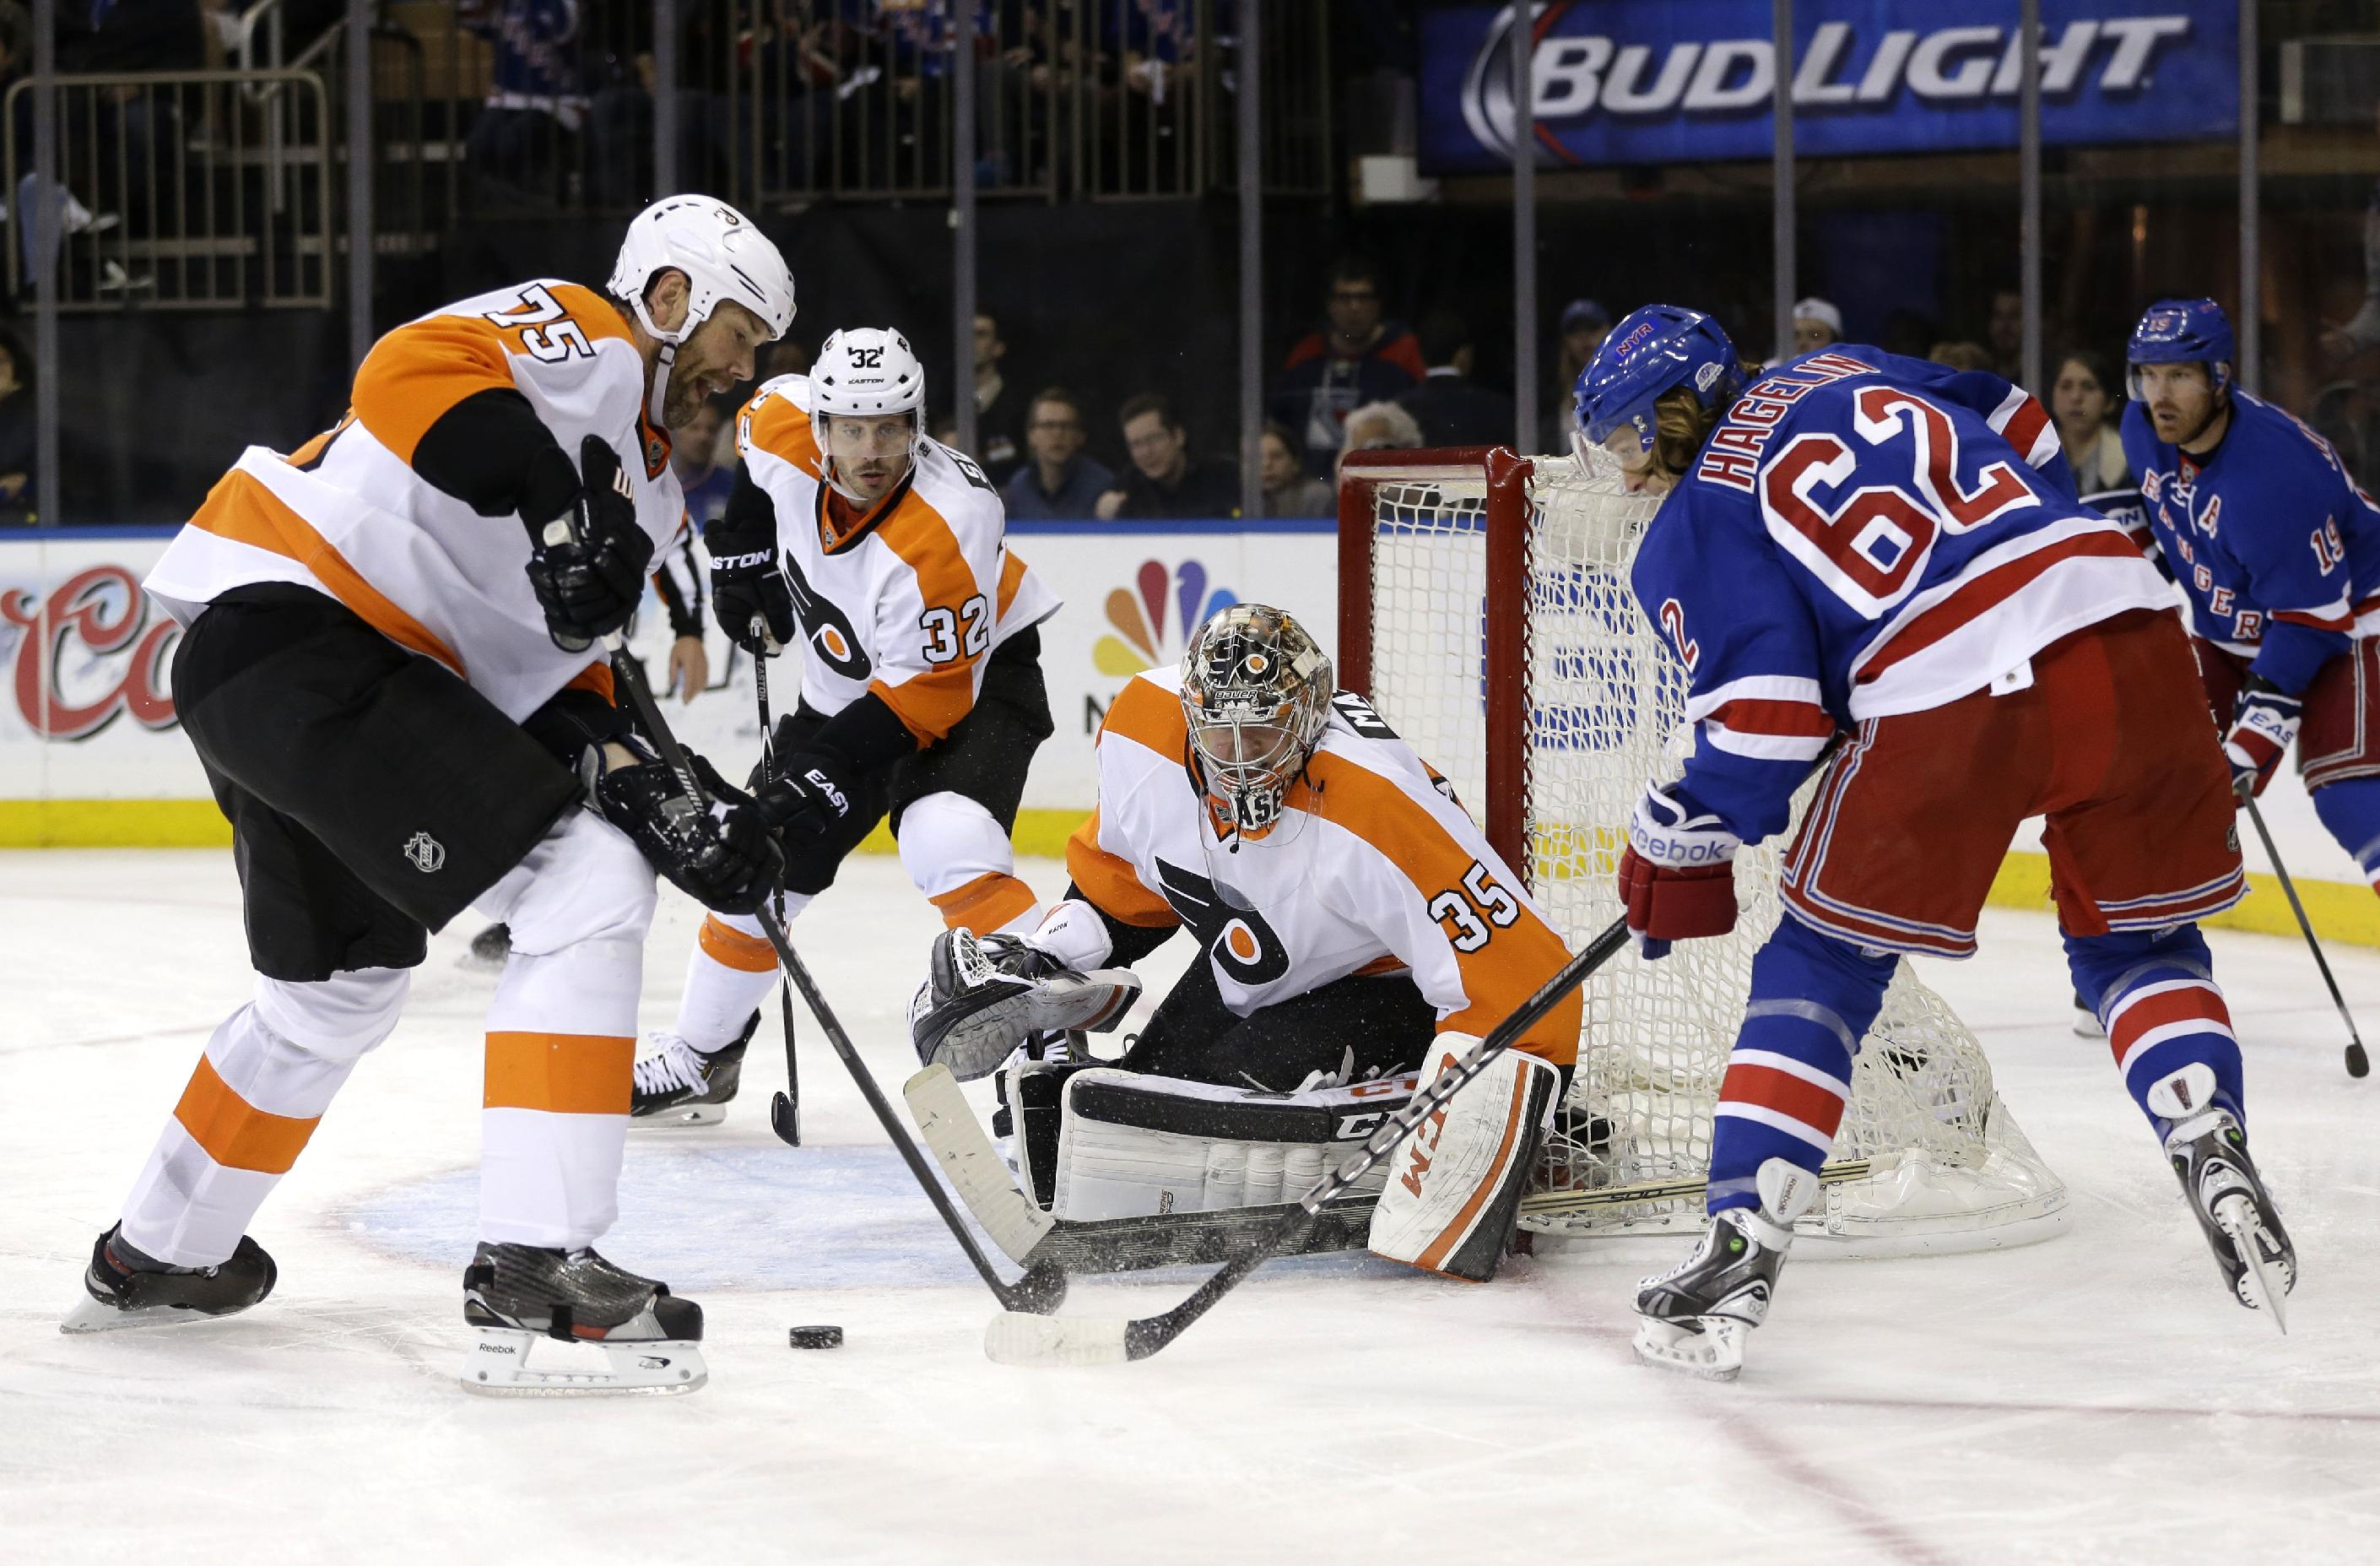 Philadelphia Flyers goalie Steve Mason, center, blocks a shot by New York Rangers' Carl Hagelin, right, as Flyers' Hal Gill, left, and Mark Streit look on during the second period of Game 5 of an NHL hockey first-round playoff series on Sunday, April 27, 2014, in New York